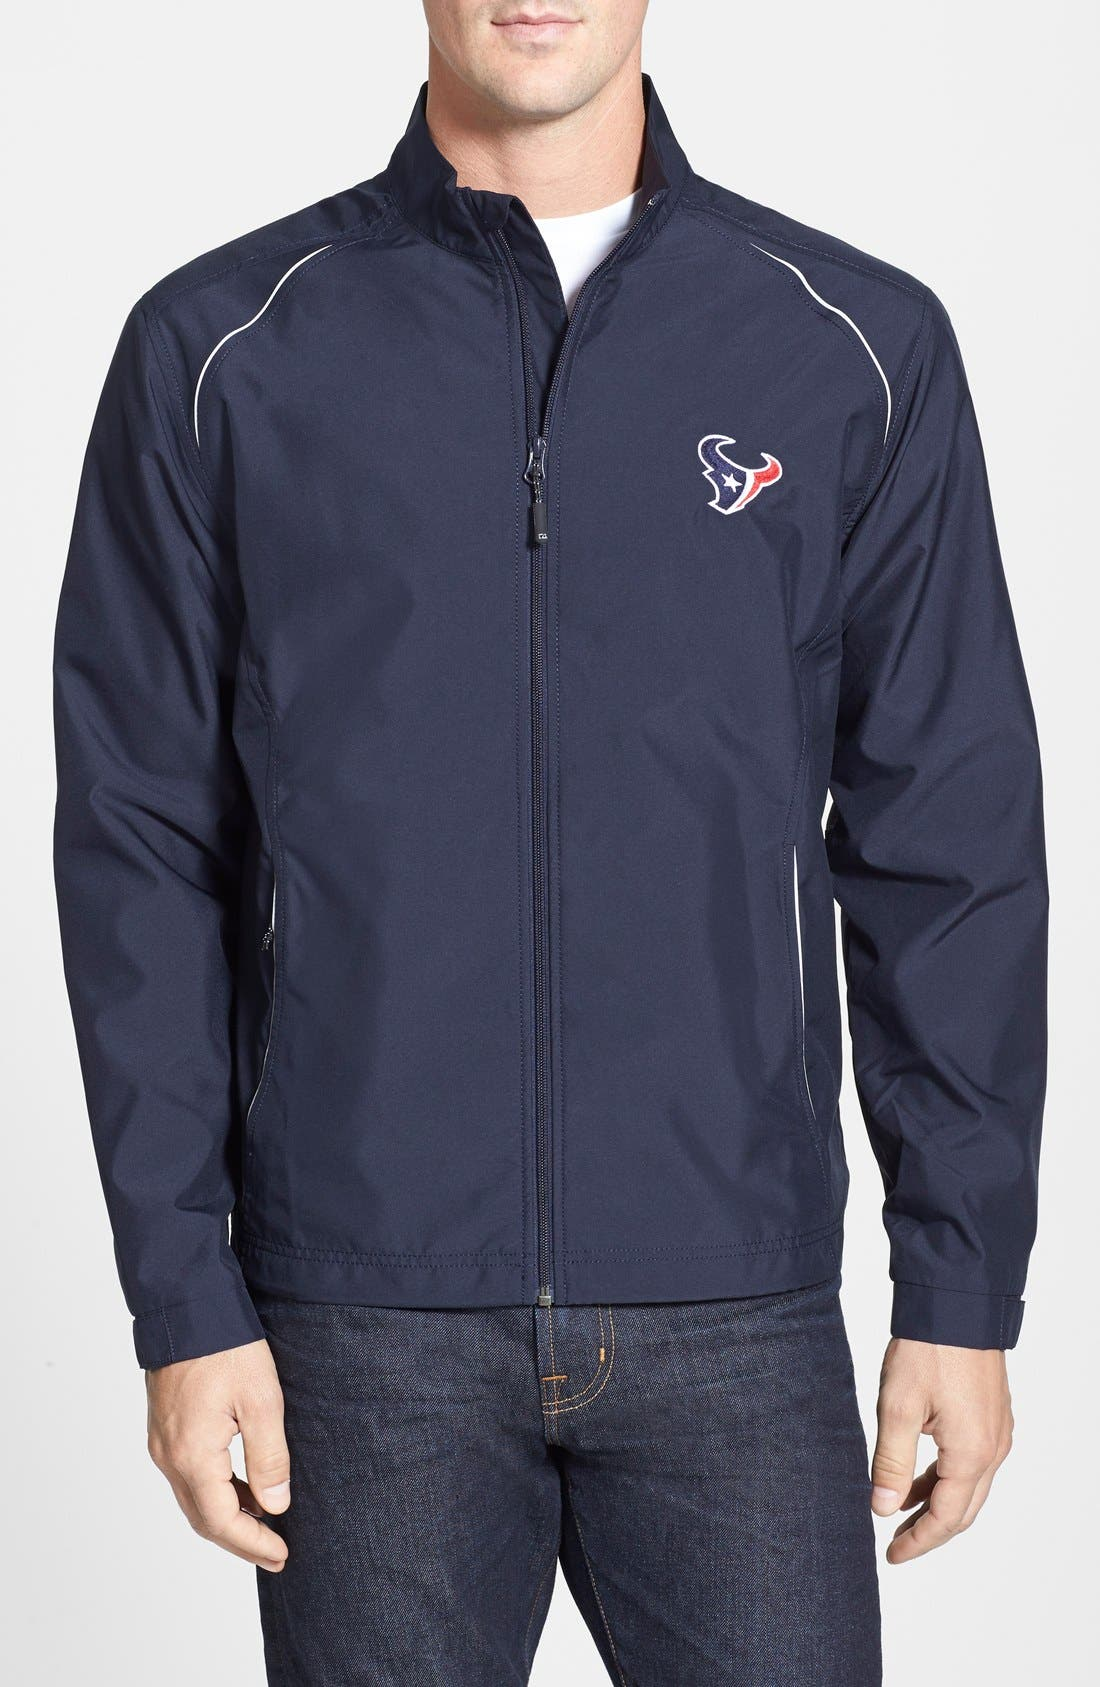 Alternate Image 1 Selected - Cutter & Buck Houston Texans - Beacon WeatherTec Wind & Water Resistant Jacket